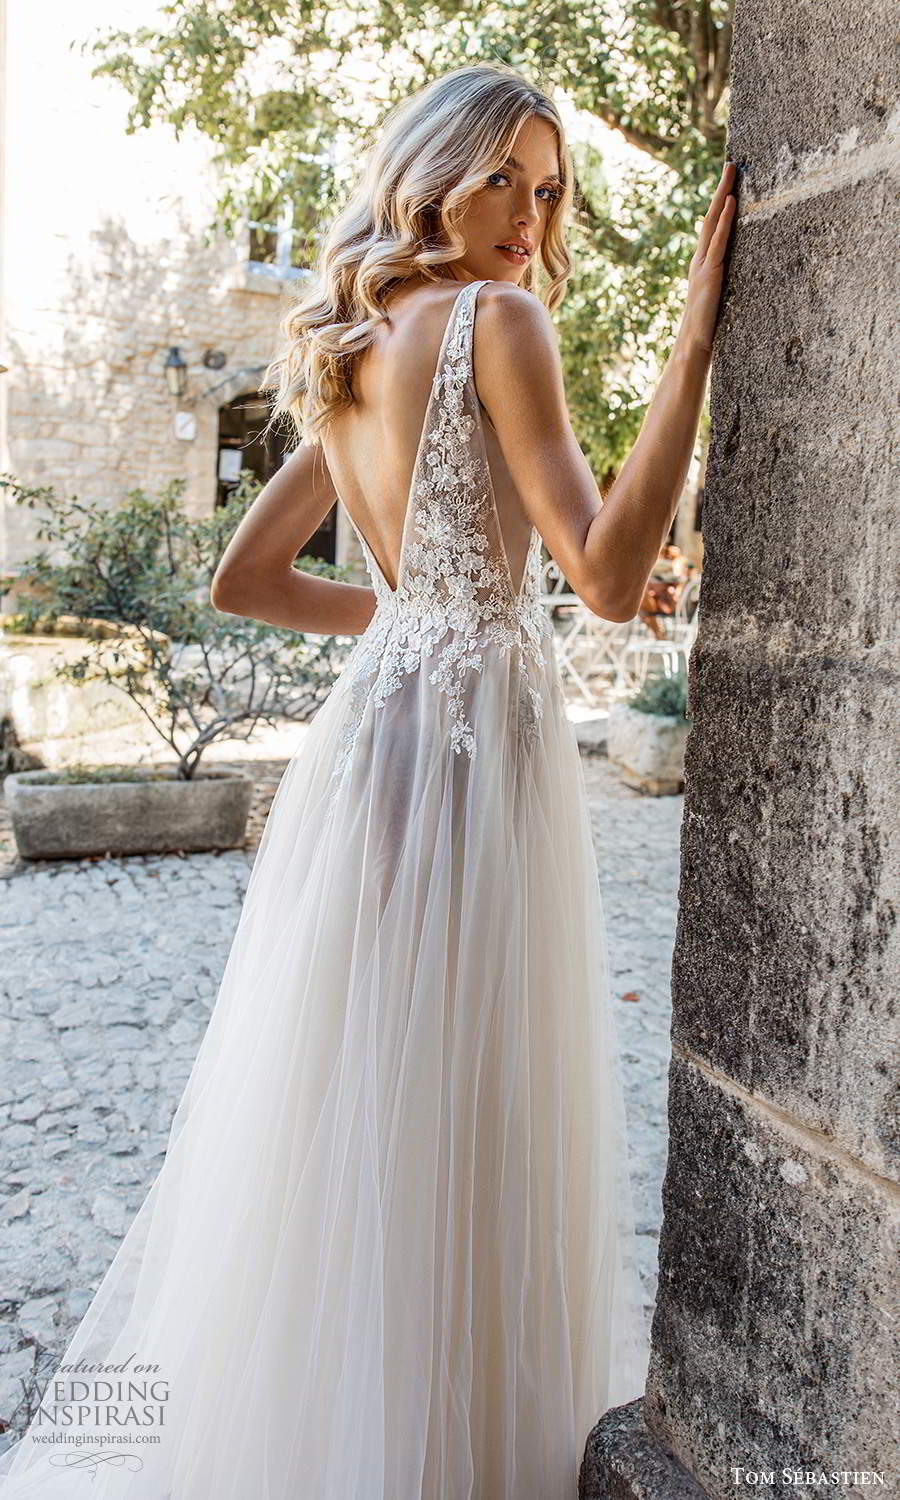 tom sebastien 2021 bridal provence sleeveless straps plunging v neckline side cutout embellished lace bodice a line ball gown wedding dress chapel train v back (9) zbv